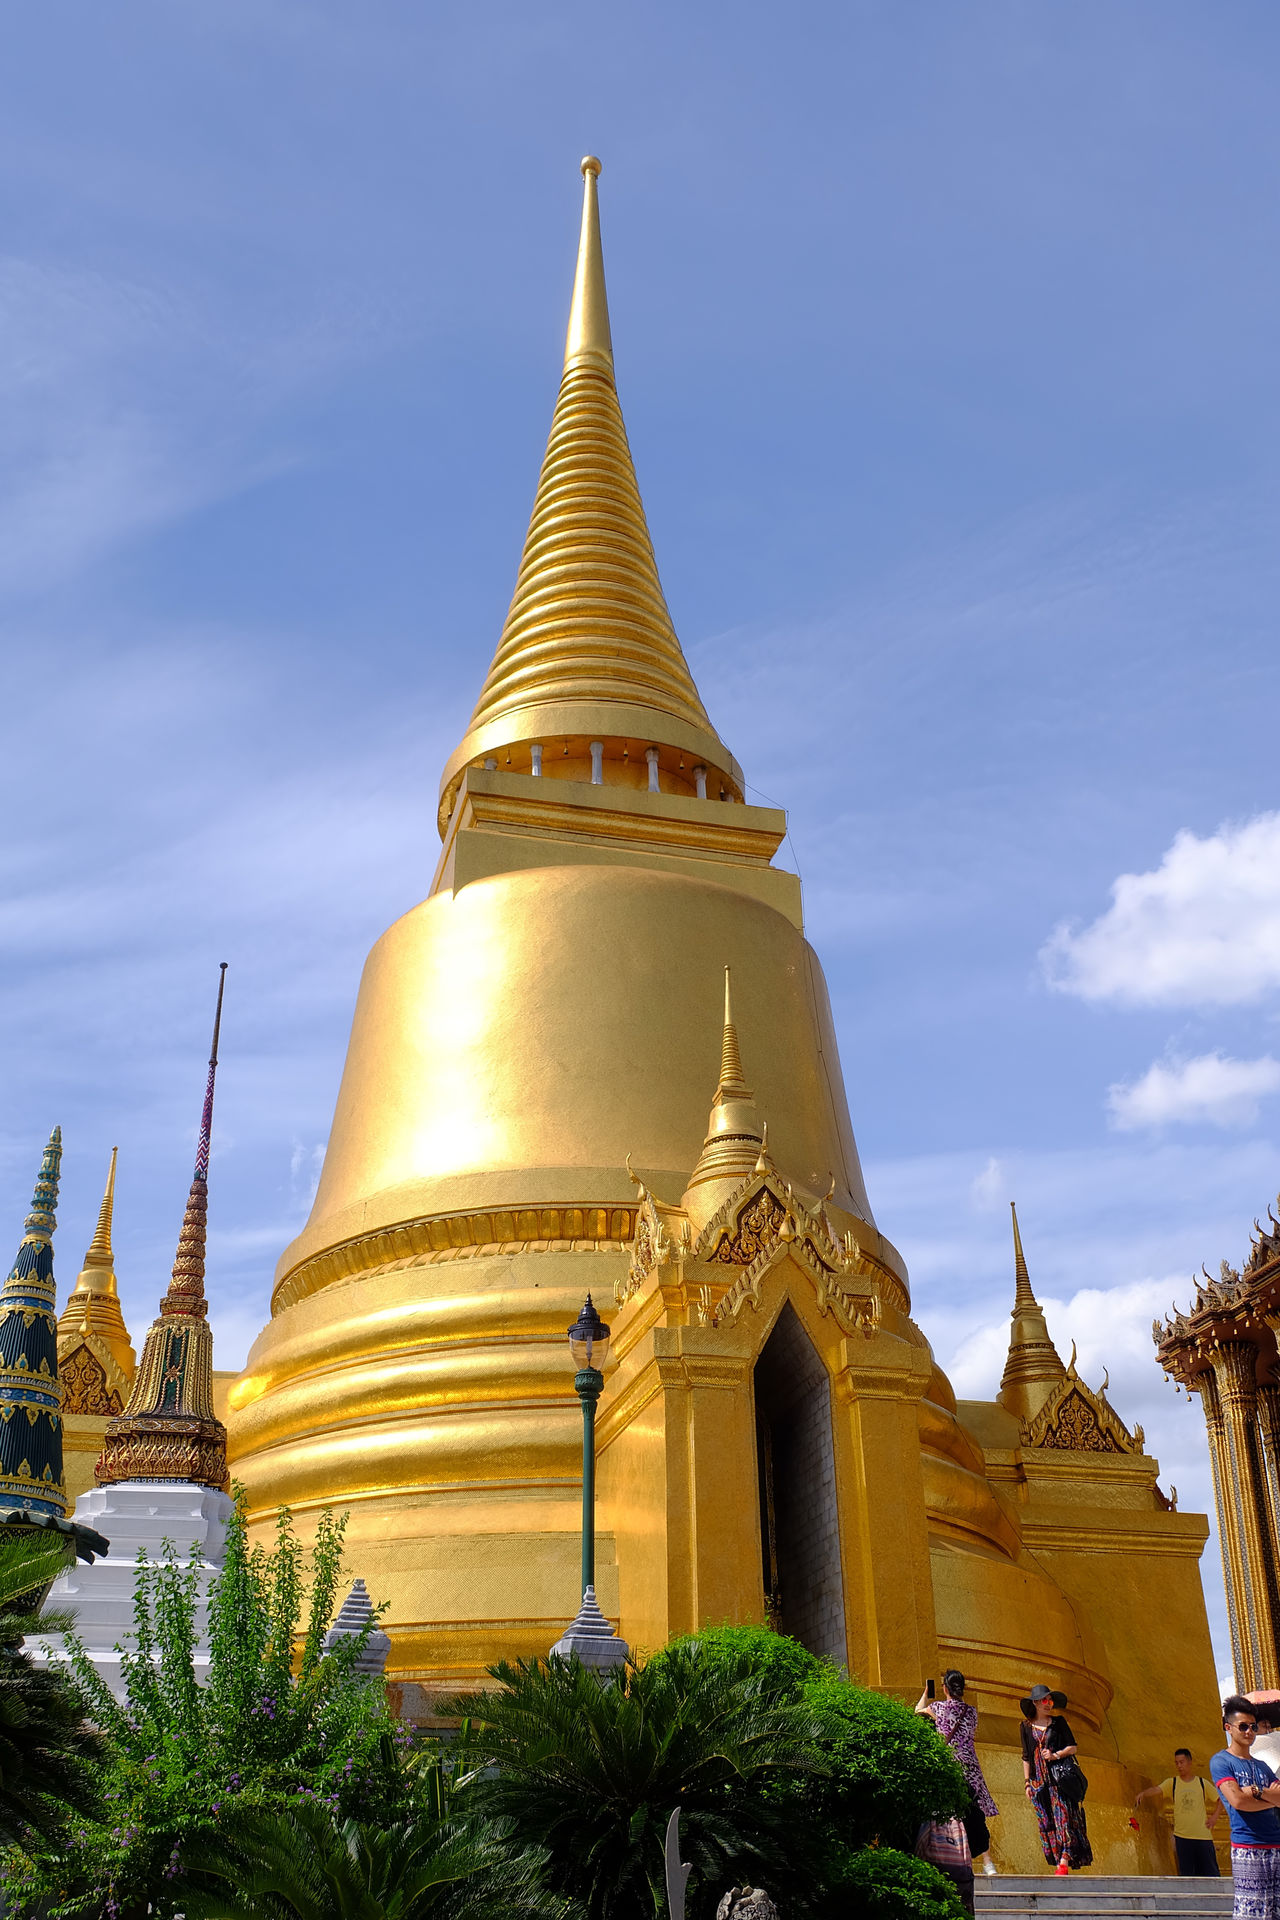 Wat Phra Kaeo temple , landmark of Thailand Ancient Architecture Art Building History Landmark Old Pagoda Religion Royal Royal Palace Temple Thai Architecture Thai Art Tourism Tourists Travel Wat Phra Kaeo